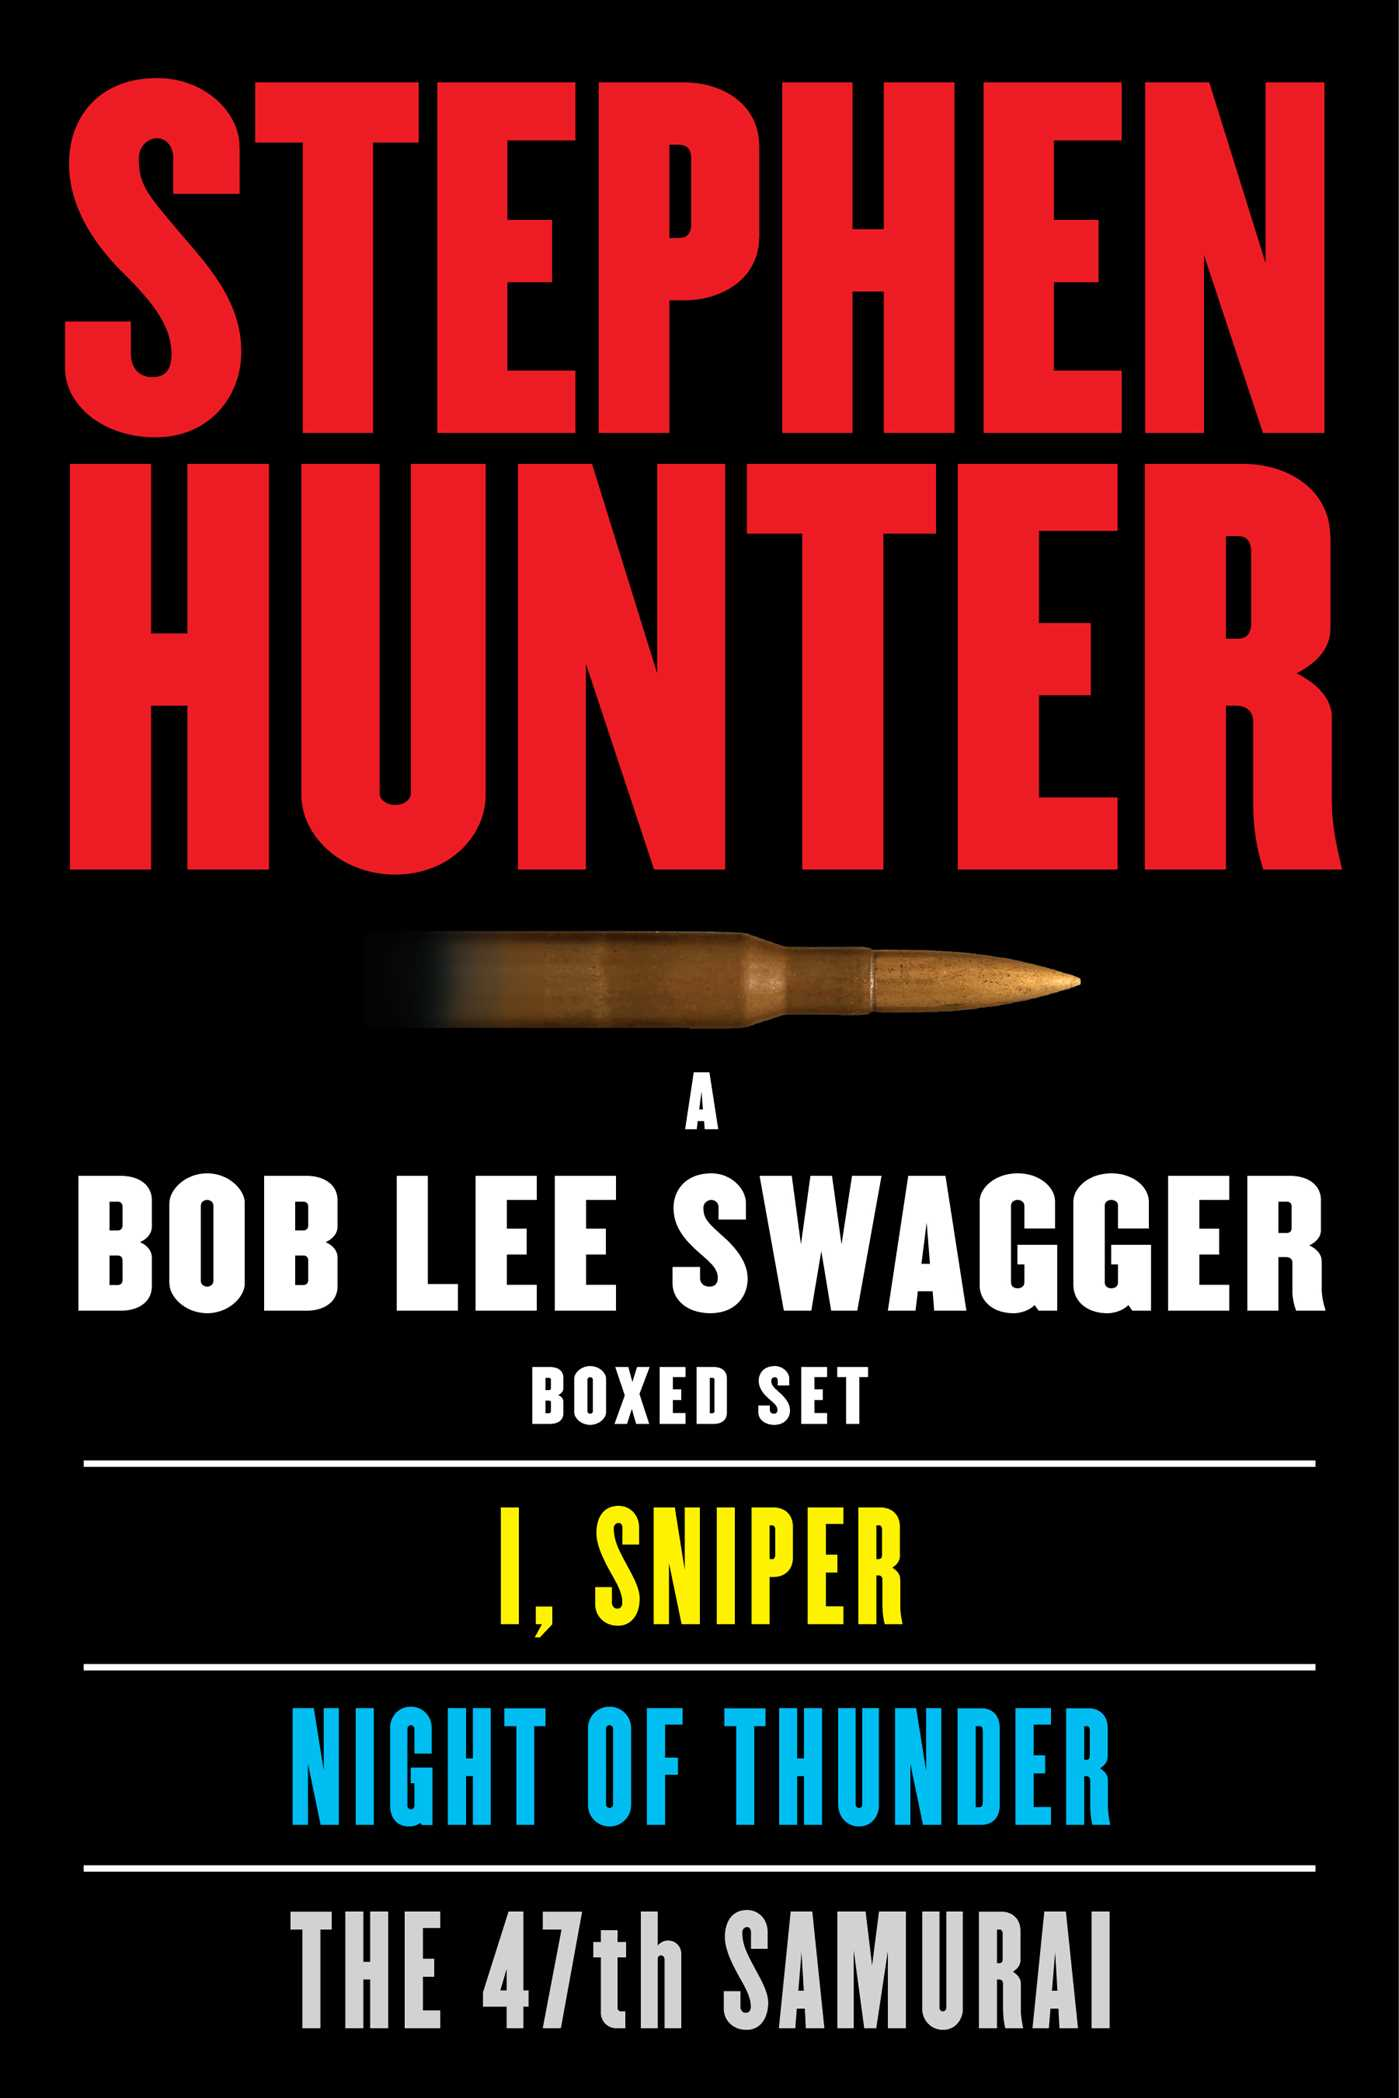 Book Cover Image (jpg): A Bob Lee Swagger eBook Boxed Set